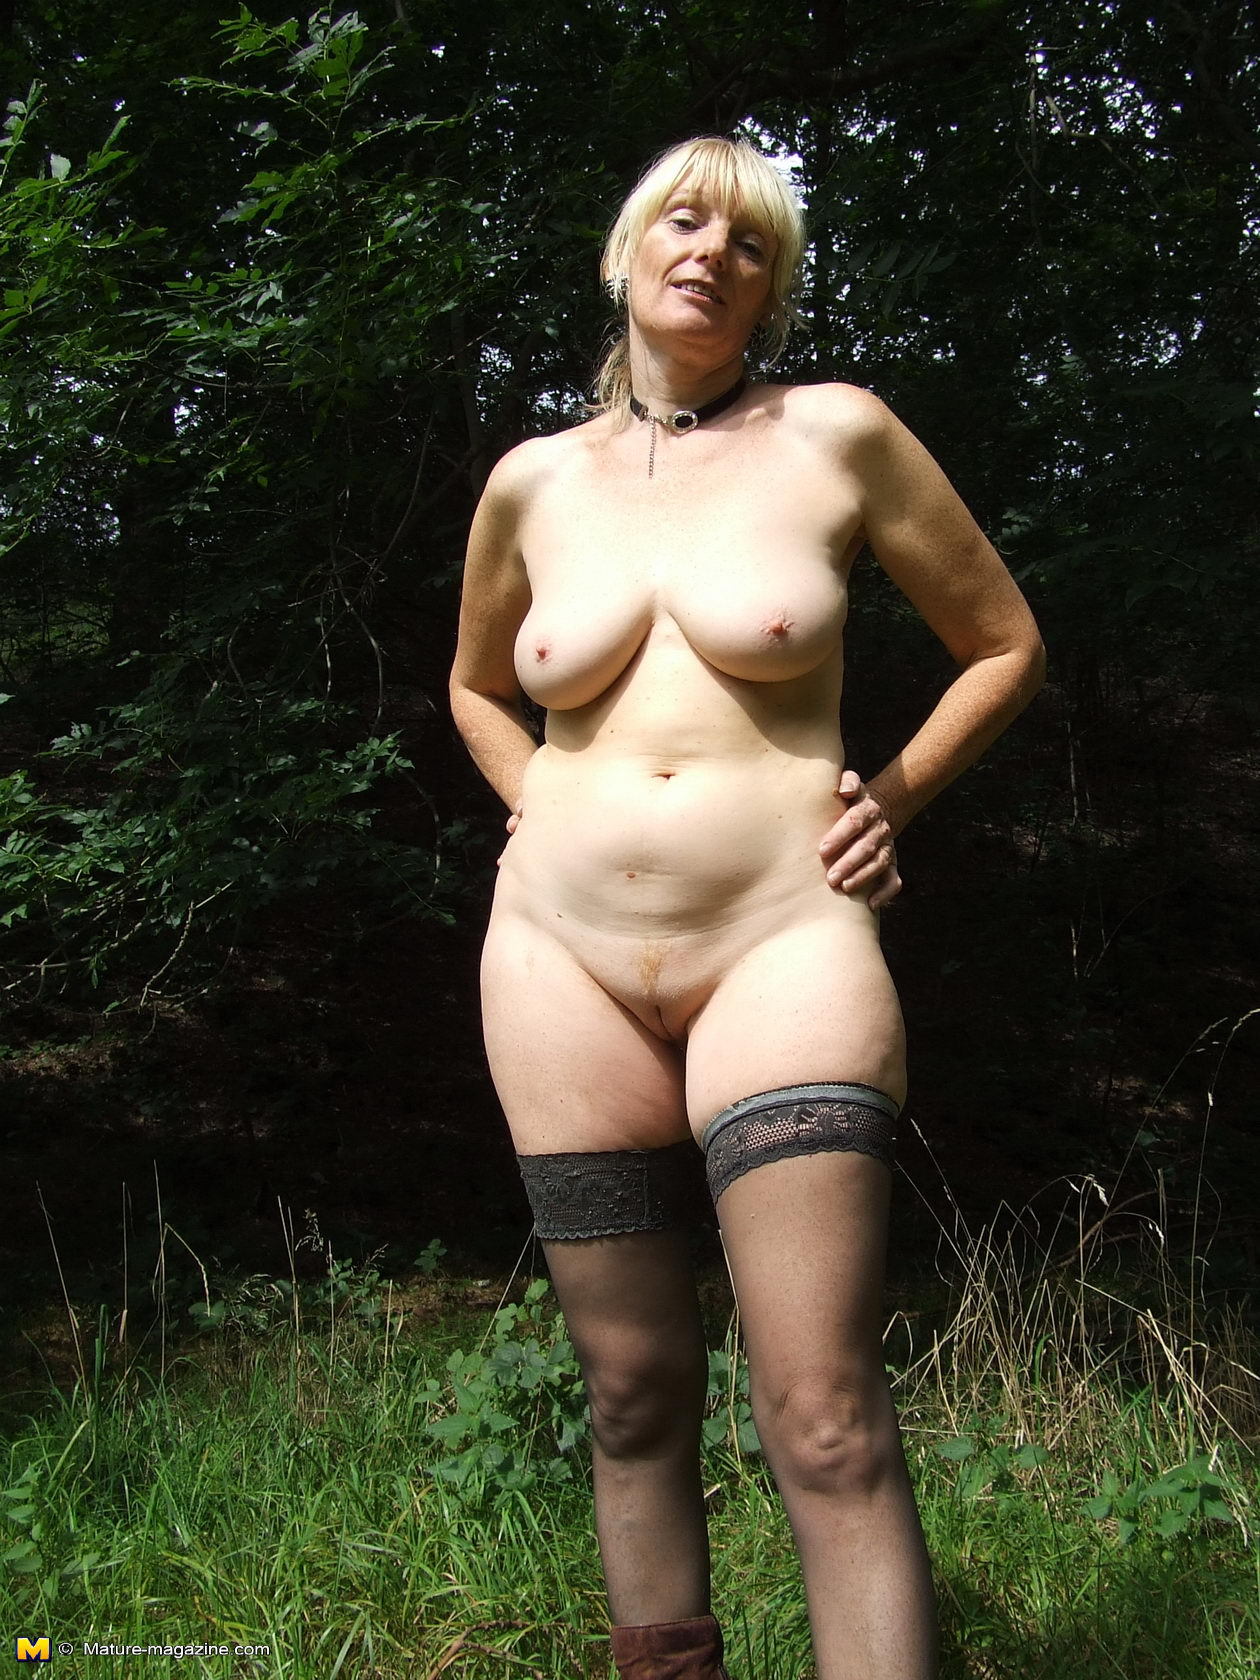 blonde mature slut playing naked in the forest - grannypornpics